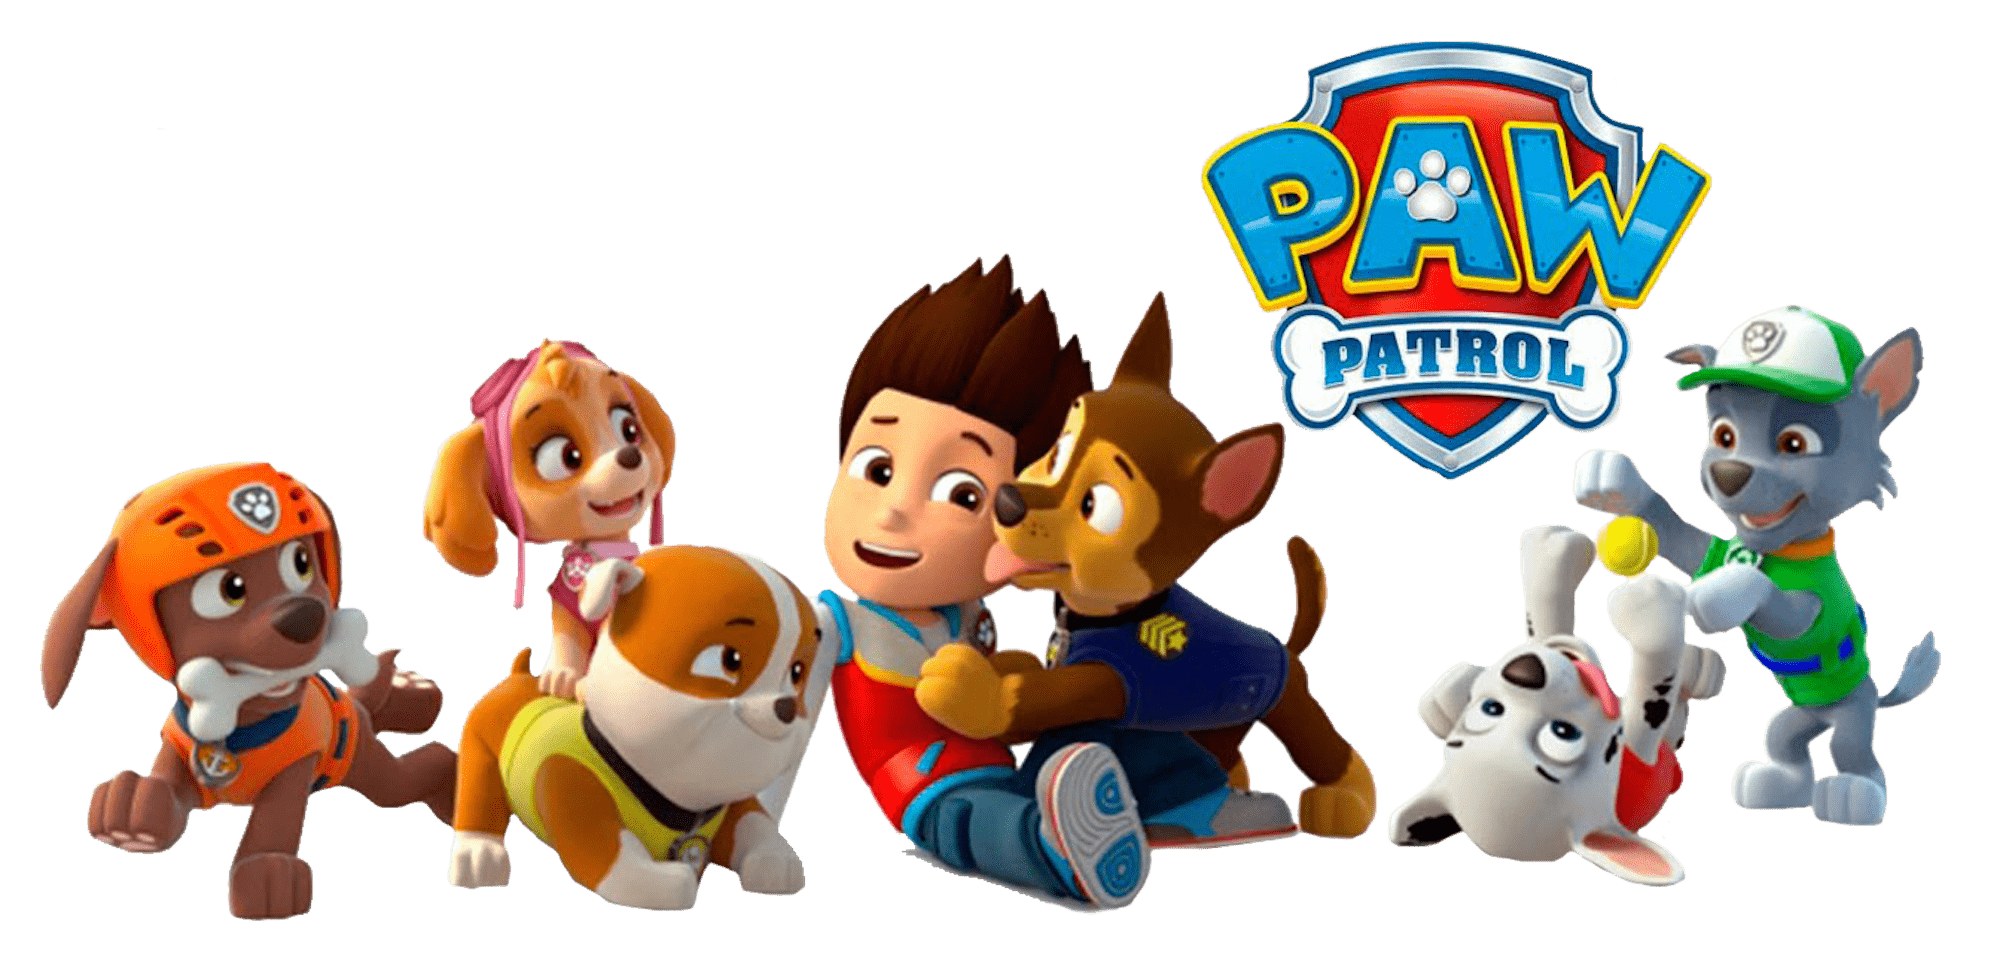 Paw patrol png transparent. Ryder with chase clipart